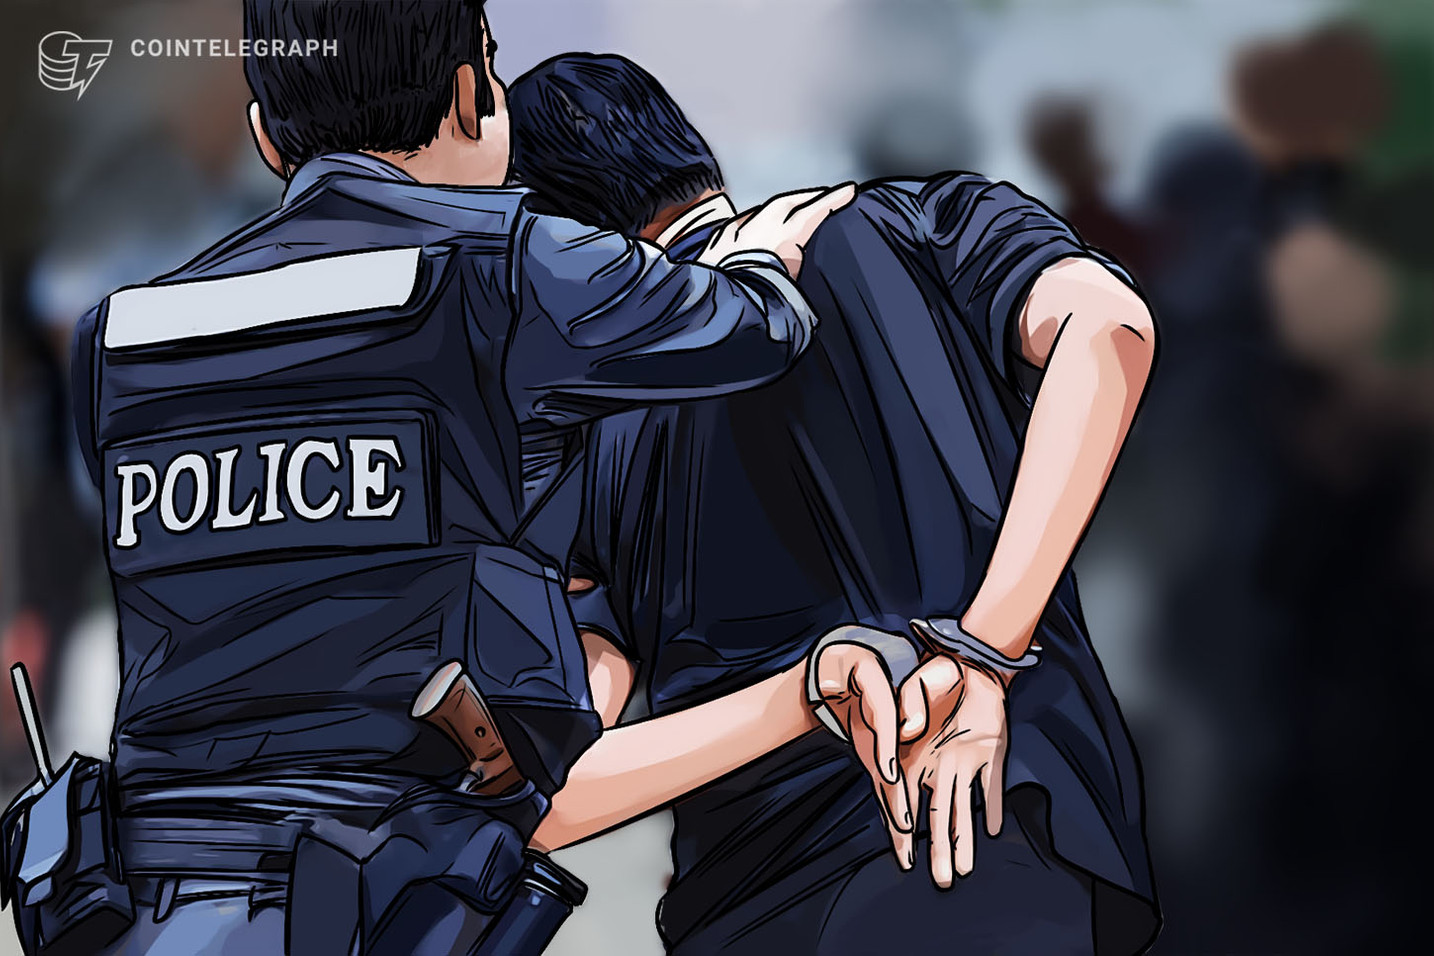 Leaders of South Korean Crypto Exchange Komid Jailed for Faking Volume: Local Media